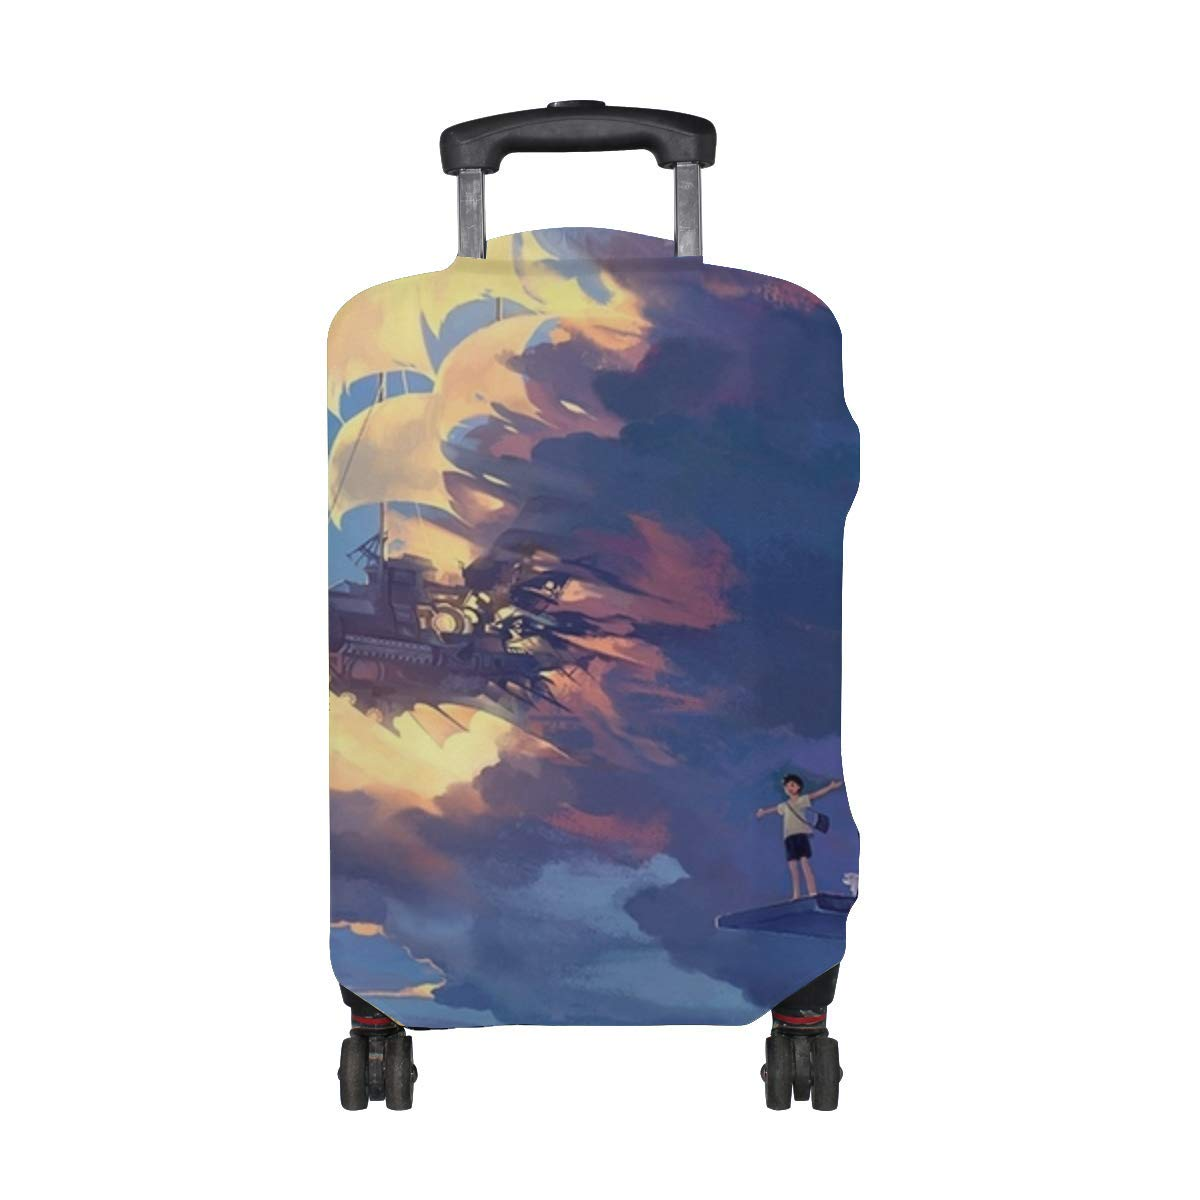 Maxm Hanyijie Sky Scenery Ship Anime Art Pattern Print Travel Luggage Protector Baggage Suitcase Cover Fits 18-21 Inch Luggage